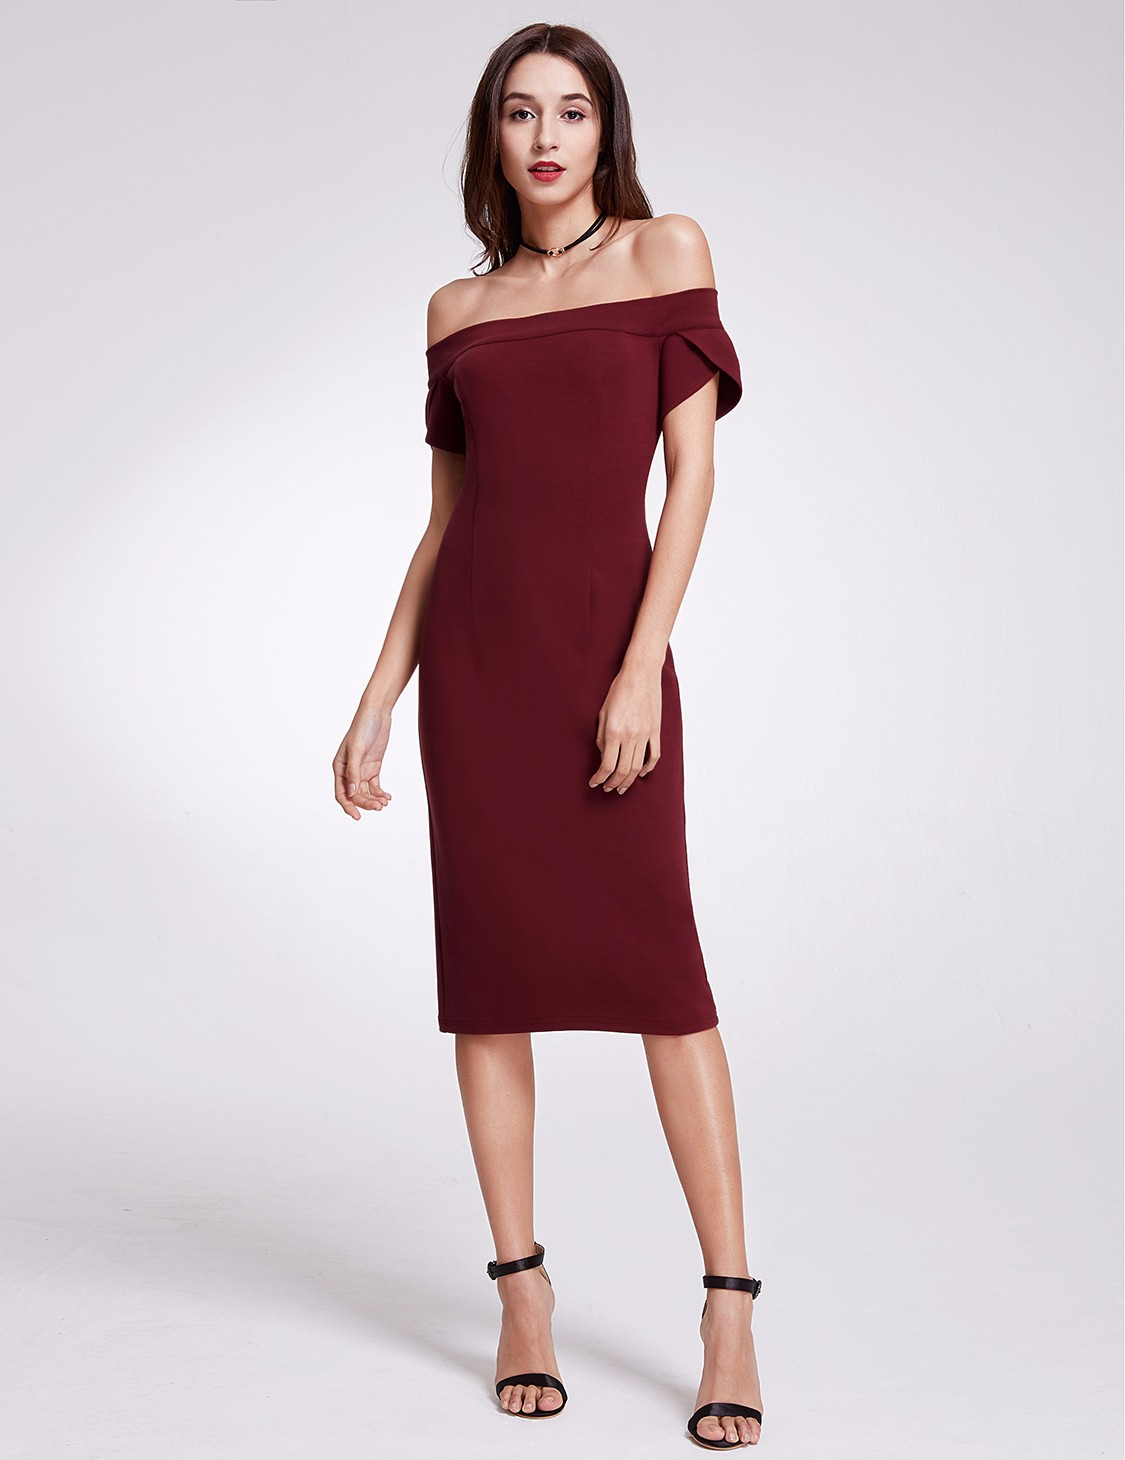 Cocktail Dresses (18)